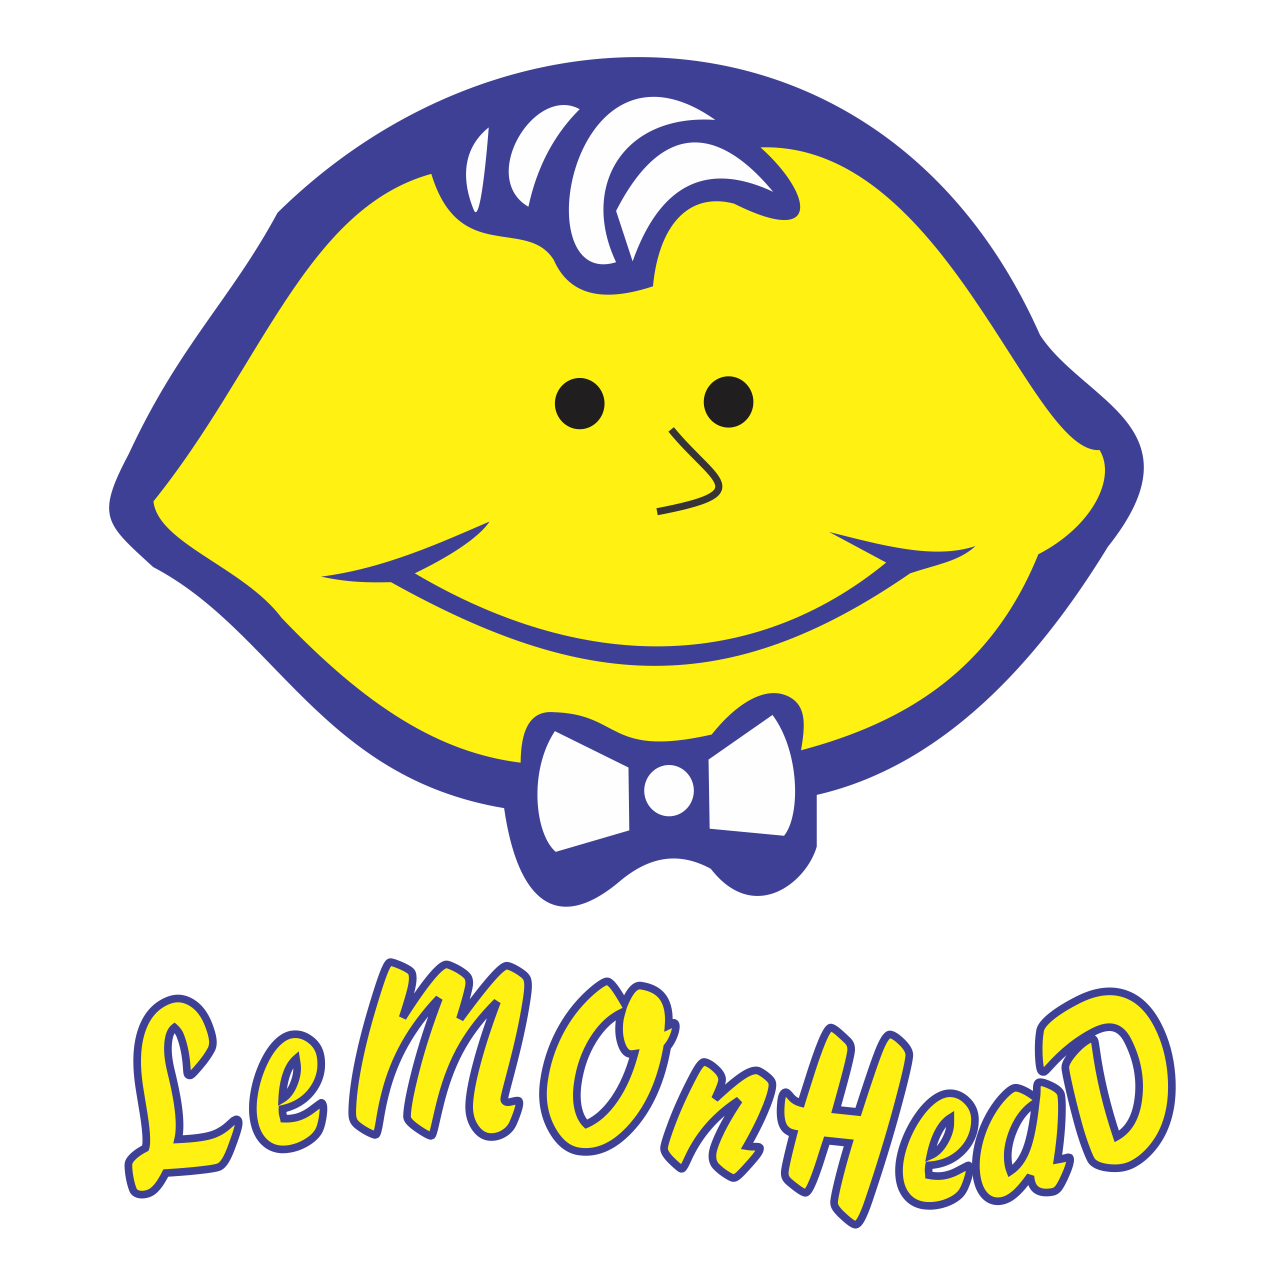 74db201b_1_dsn_img_lemon20head.png